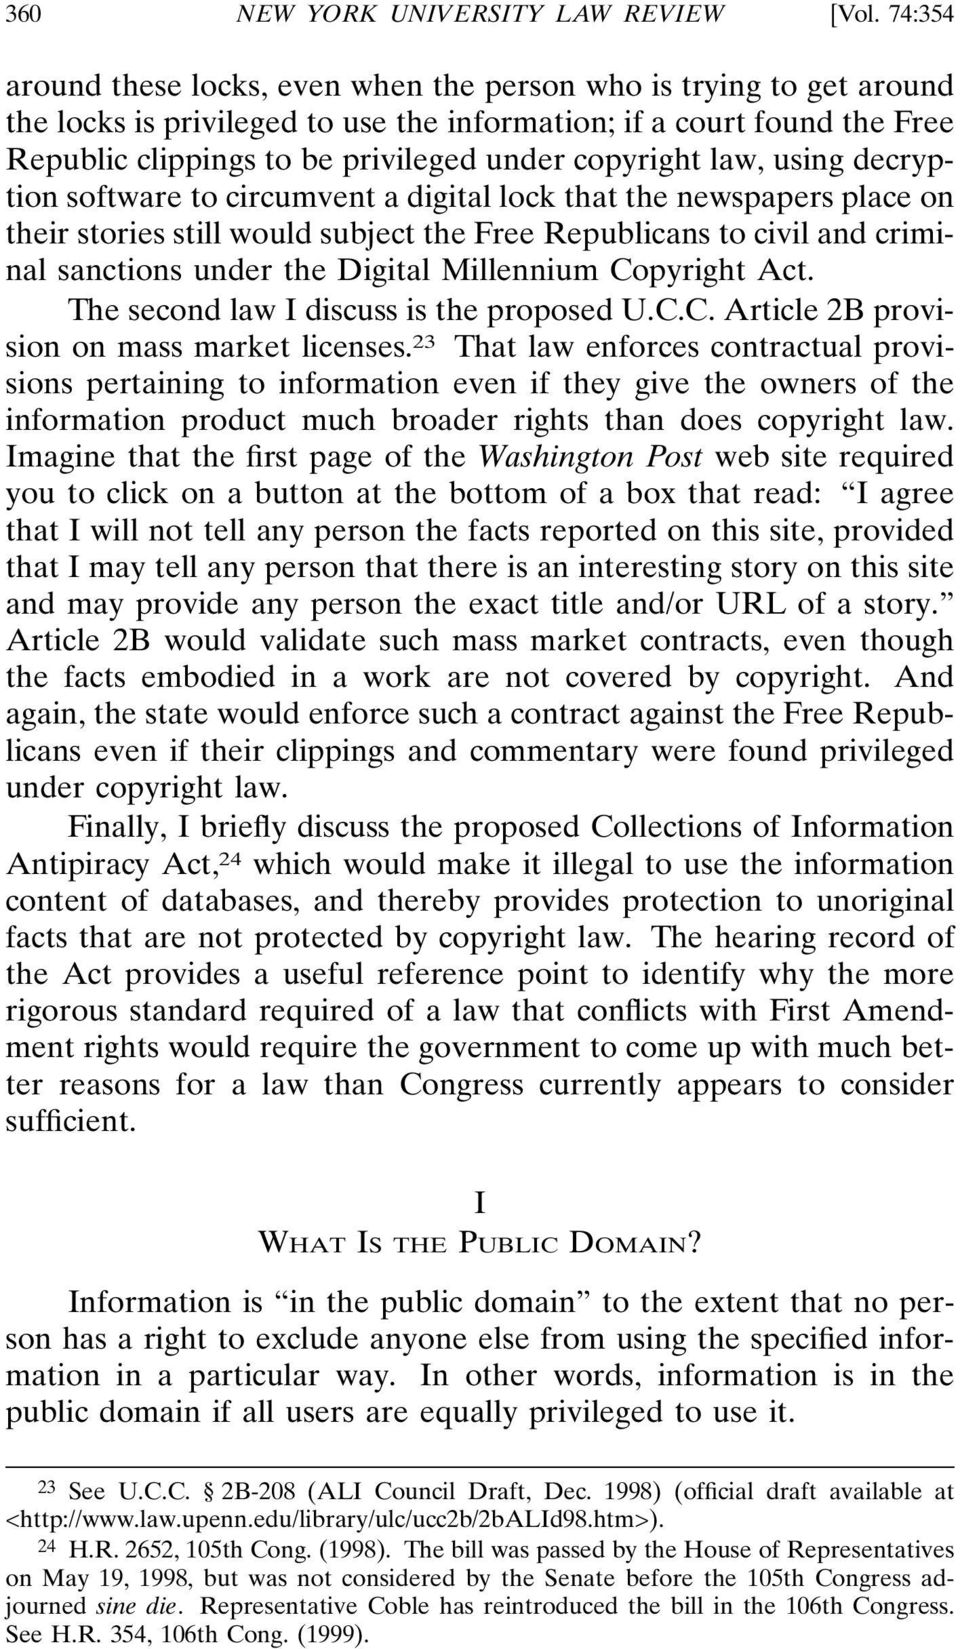 copyright law, using decryption software to circumvent a digital lock that the newspapers place on their stories still would subject the Free Republicans to civil and criminal sanctions under the